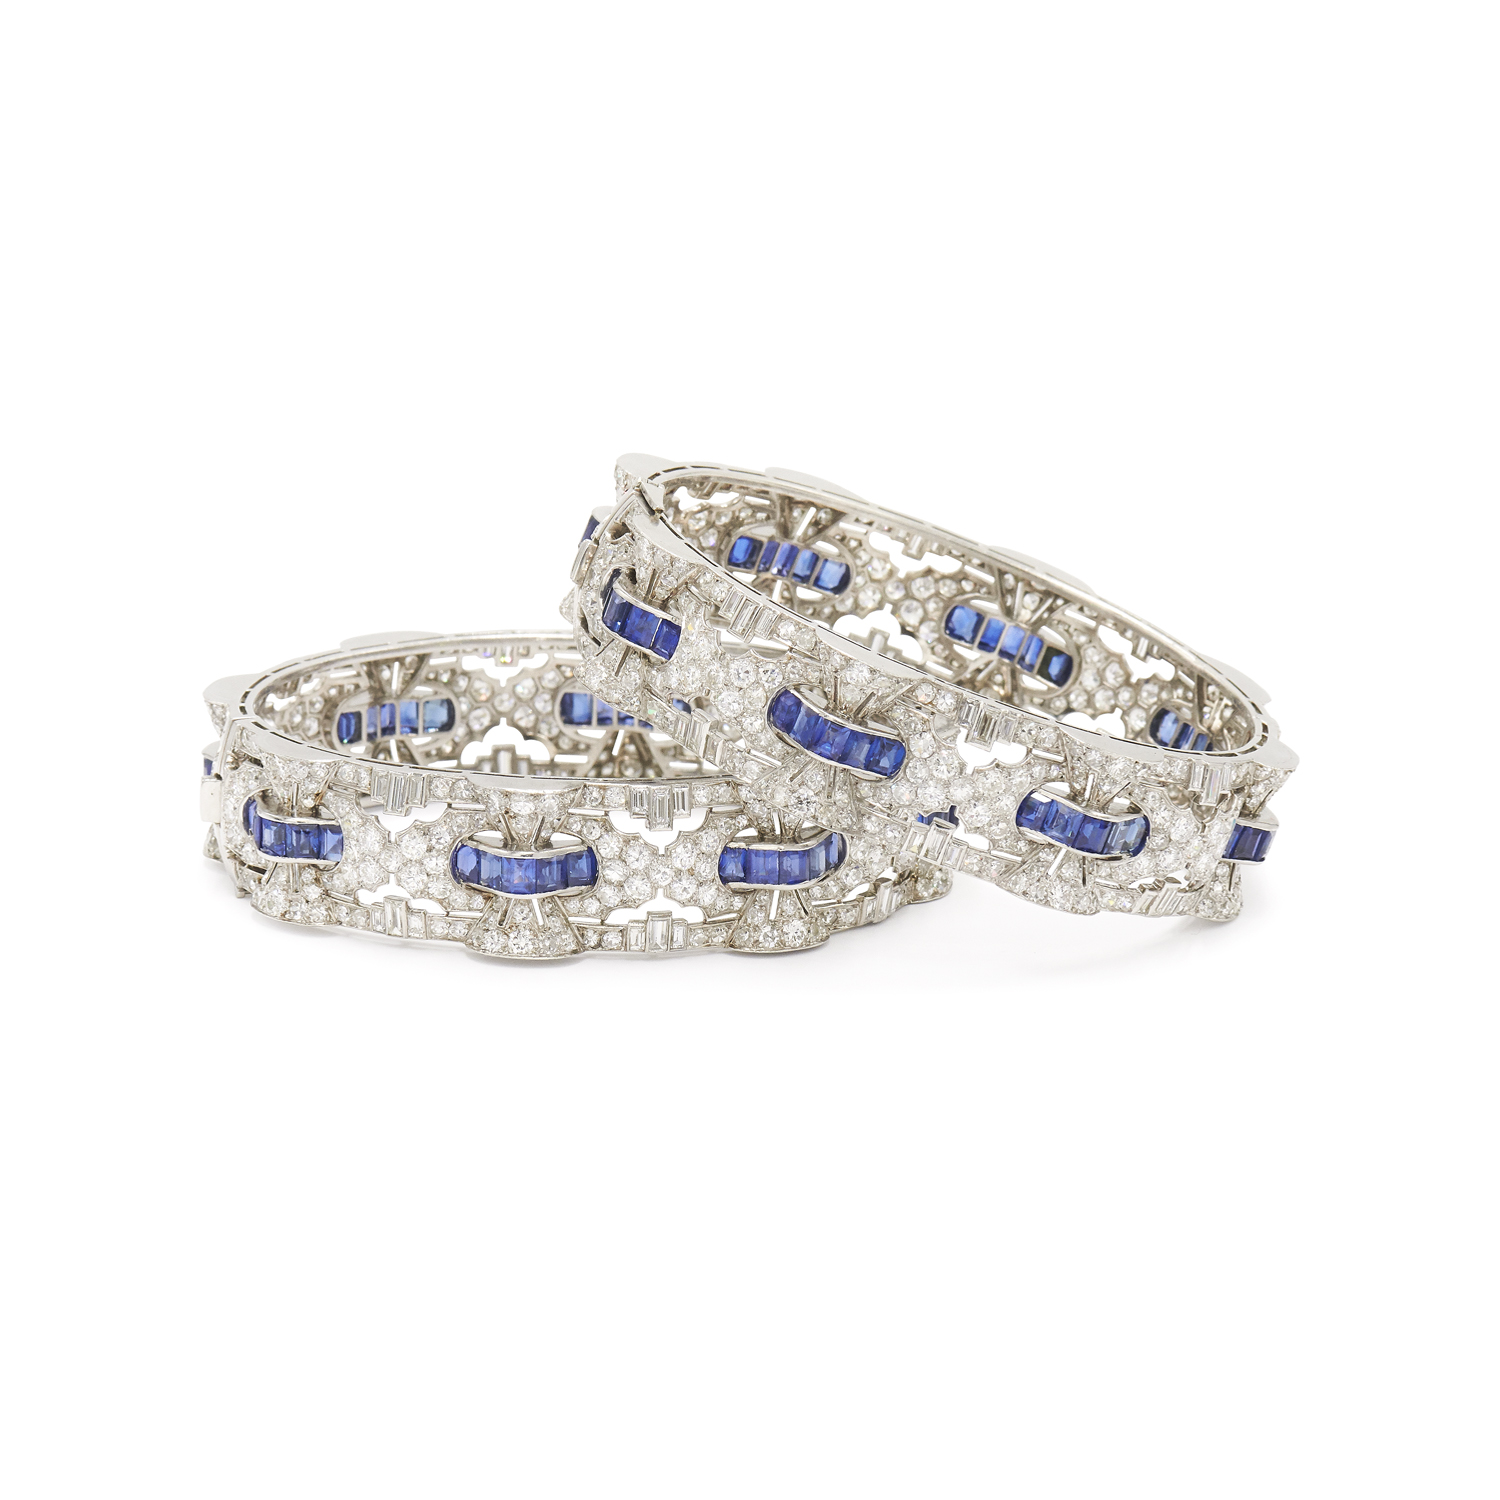 Pair of Art Deco Diamond and Sapphire Bangle Bracelets, Serial FL33934